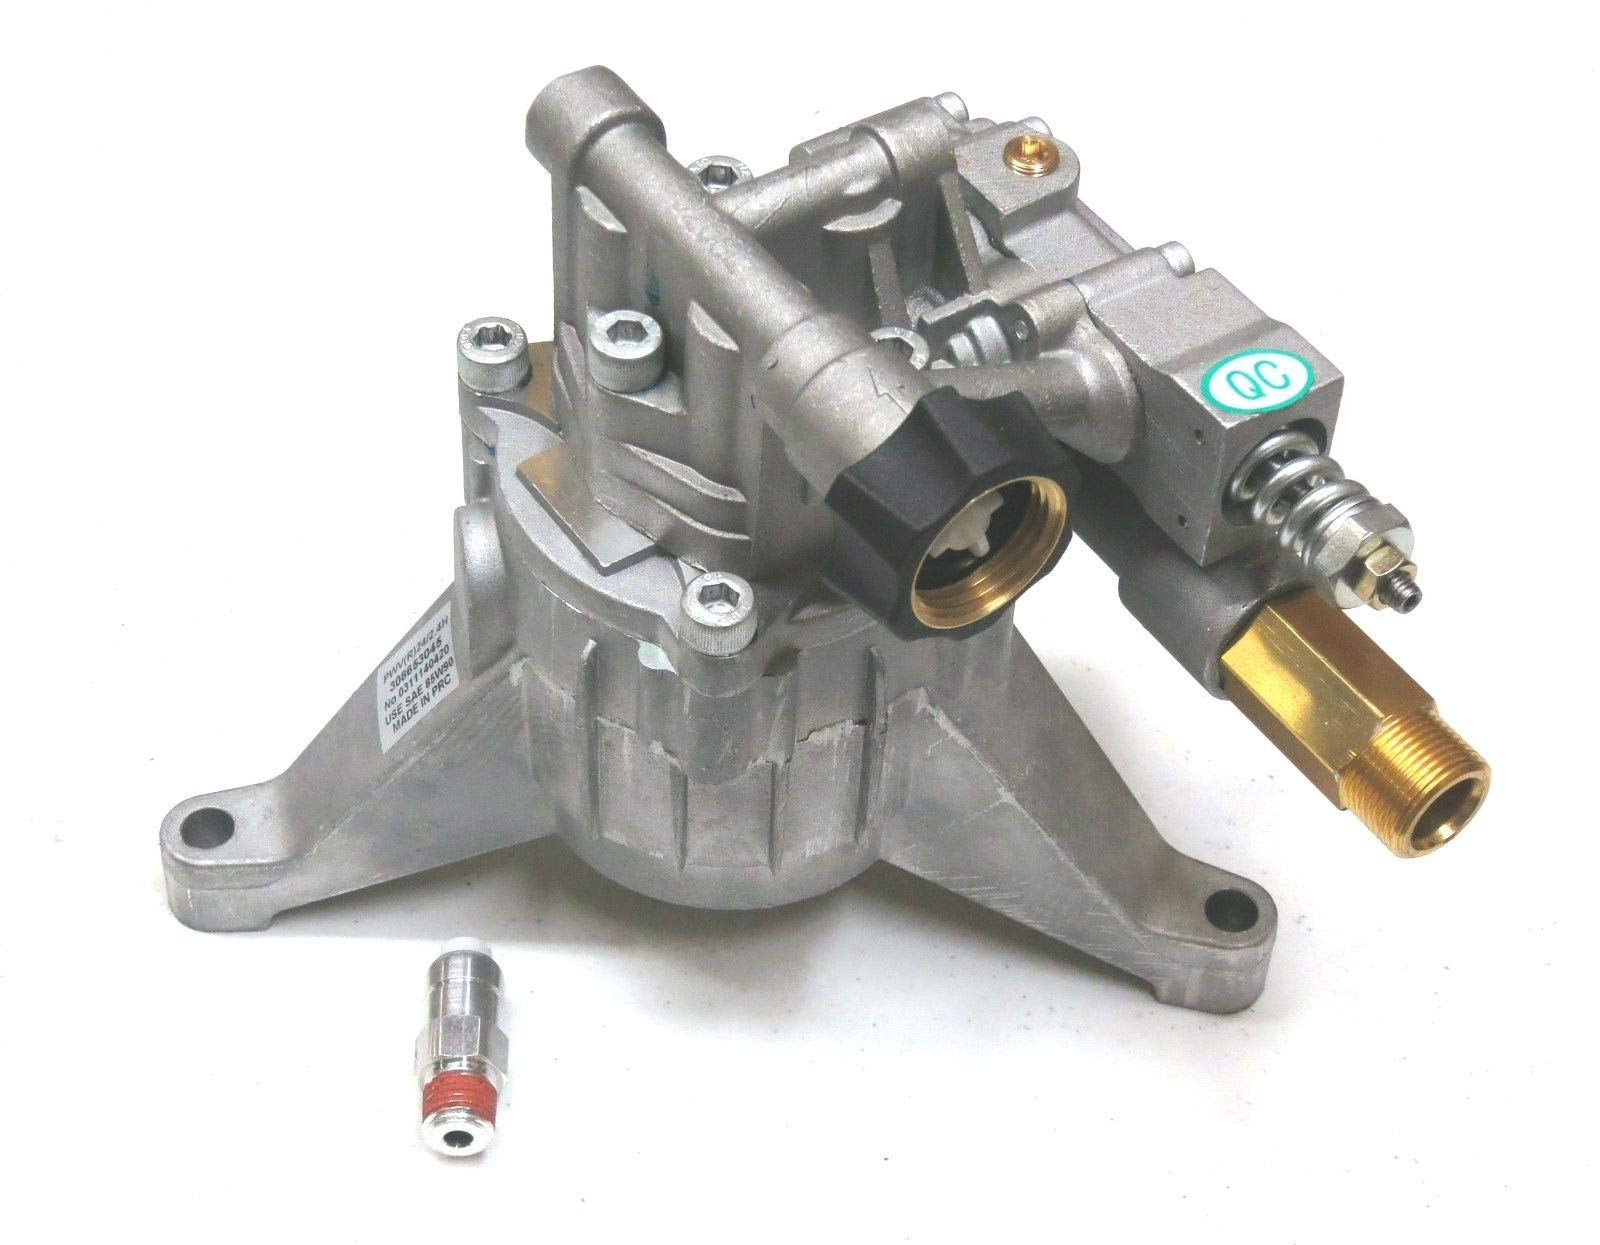 Himore New 2800 psi POWER PRESSURE WASHER WATER PUMP Troy-Bilt 020568 020568-00 The ROP Shop